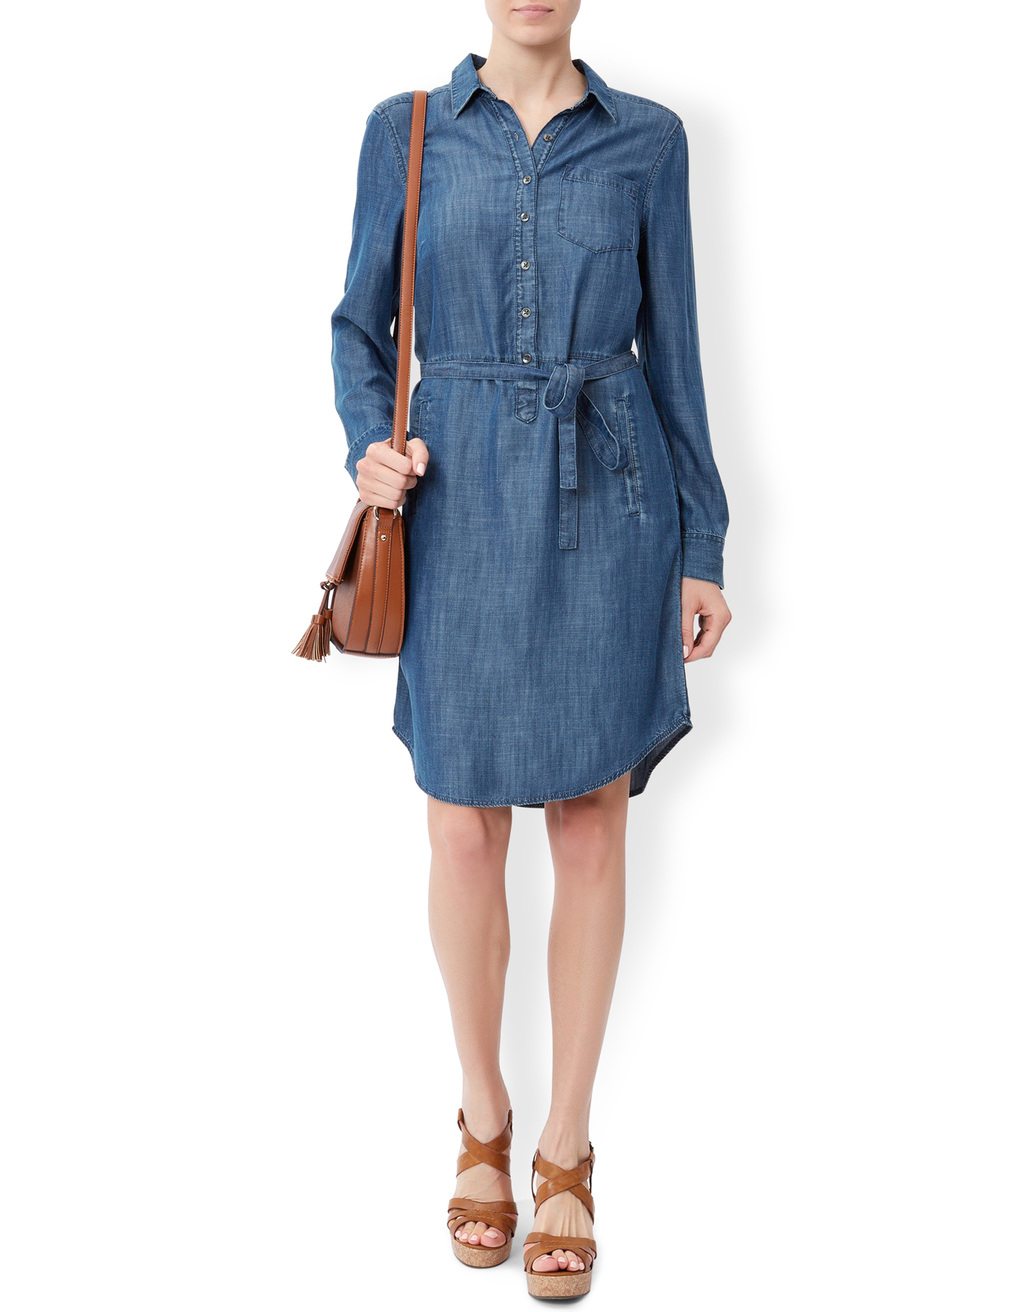 Tatiana Tencel Shirt Dress - style: shirt; neckline: shirt collar/peter pan/zip with opening; pattern: plain; waist detail: belted waist/tie at waist/drawstring; predominant colour: denim; occasions: casual; length: on the knee; fit: body skimming; fibres: viscose/rayon - 100%; sleeve length: long sleeve; sleeve style: standard; texture group: denim; pattern type: fabric; season: s/s 2016; wardrobe: basic